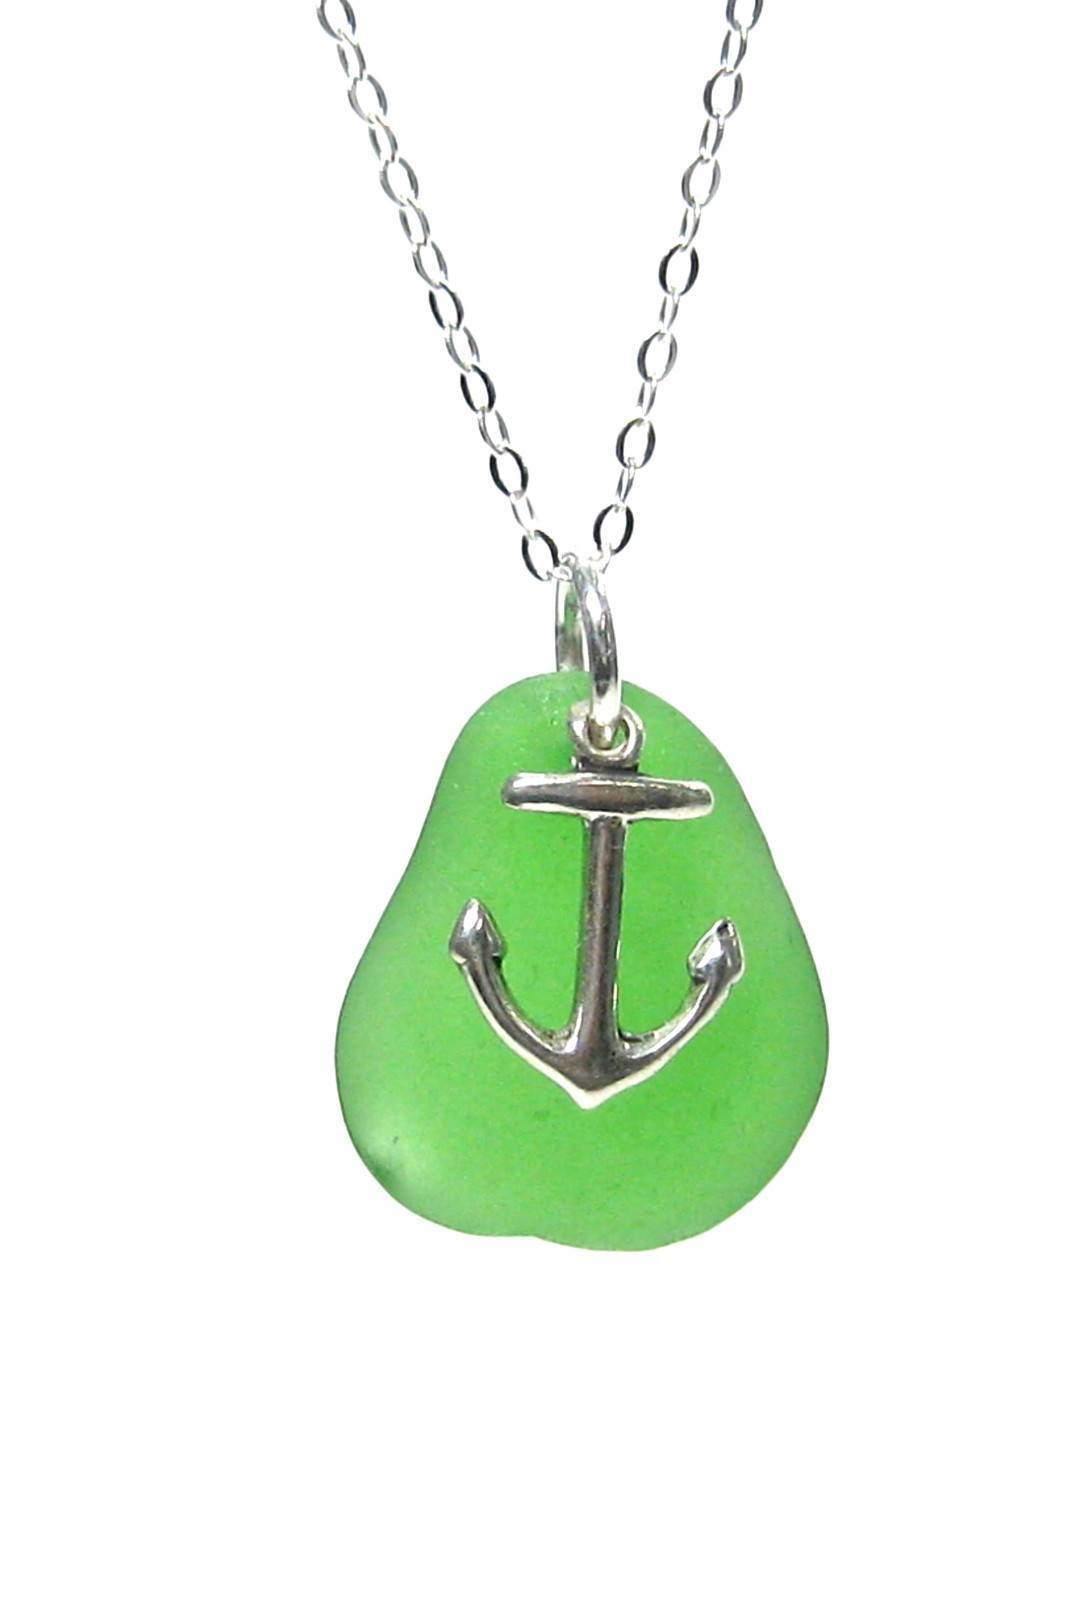 Anchor Charm Sea Glass Necklace with Gift Box - Fishers Finery